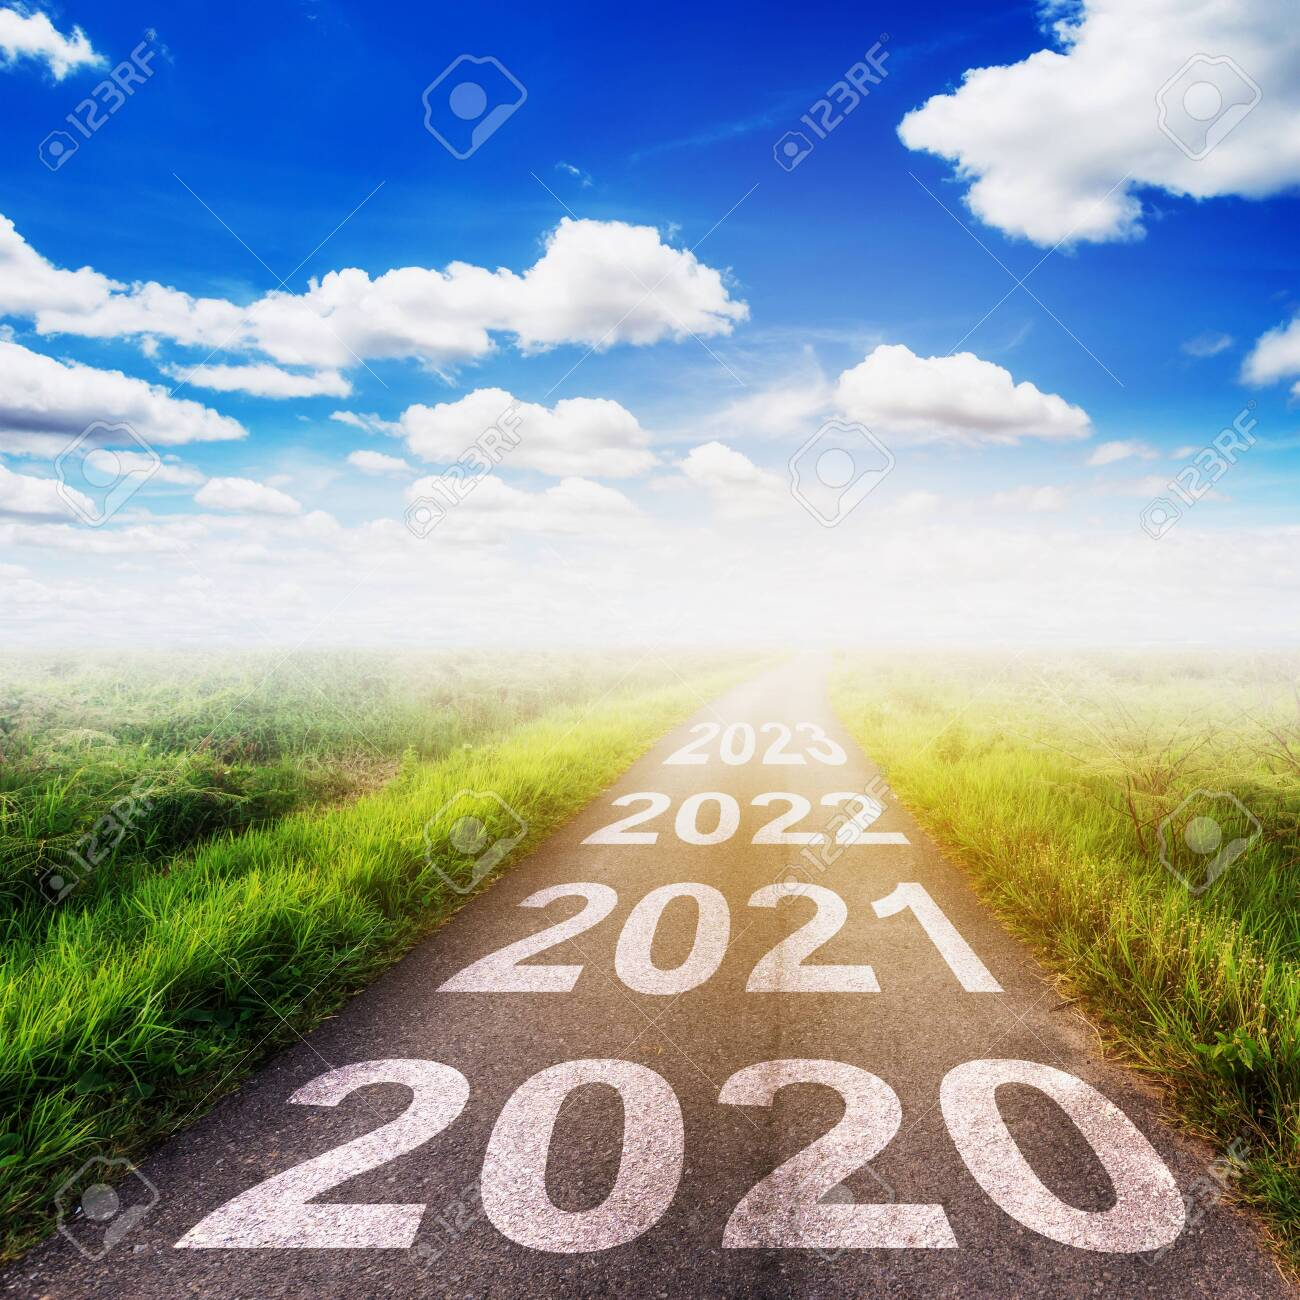 Empty asphalt road and New year 2020 concept. Driving on an empty road to Goals 2020. - 134680529